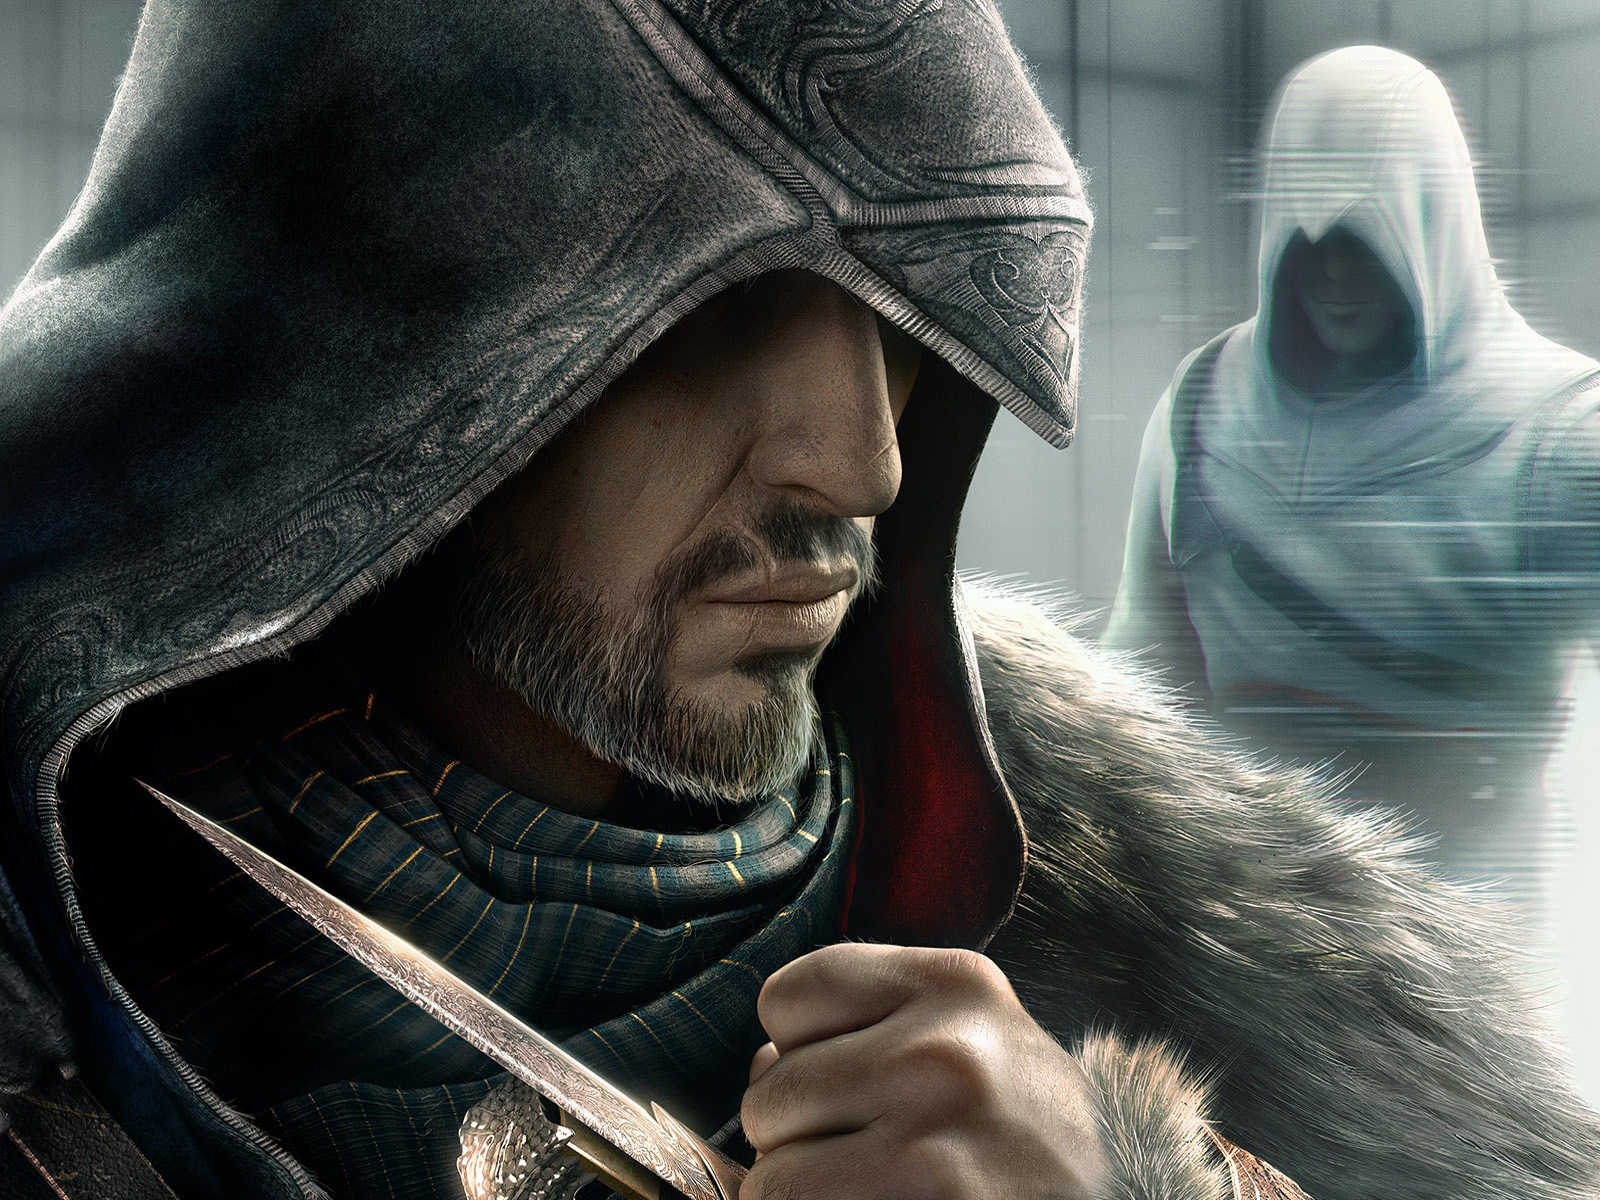 assassins creed Ezio revelations